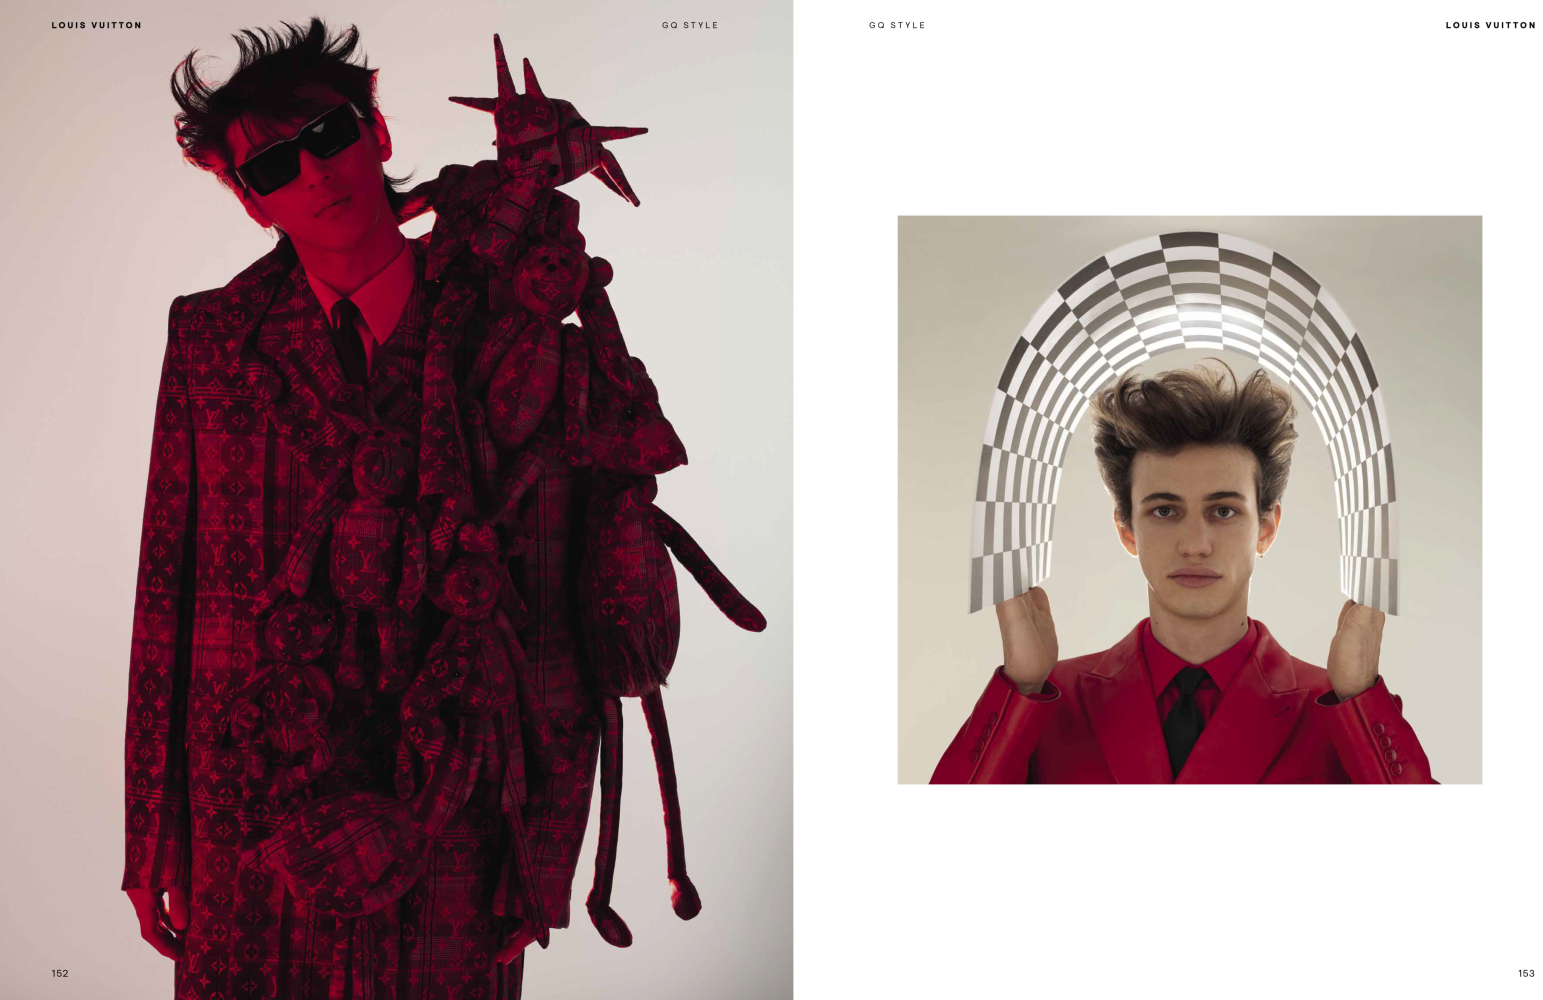 THIERRI FOR GQ GERMANY LOUIS VUITTON SPECIAL